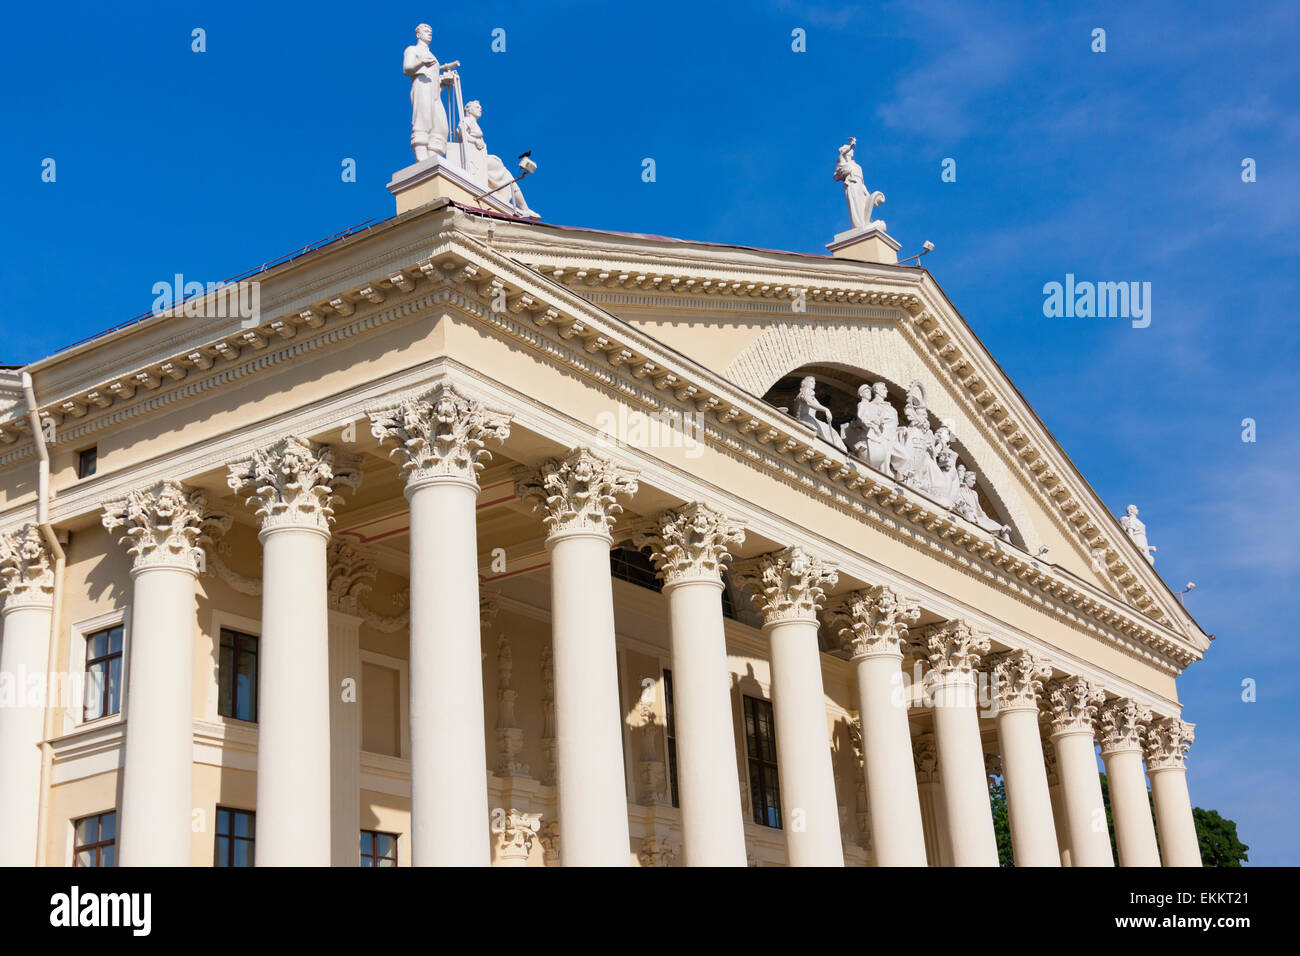 Trade Unions Culture Palace, Minsk, Belarus - Stock Image